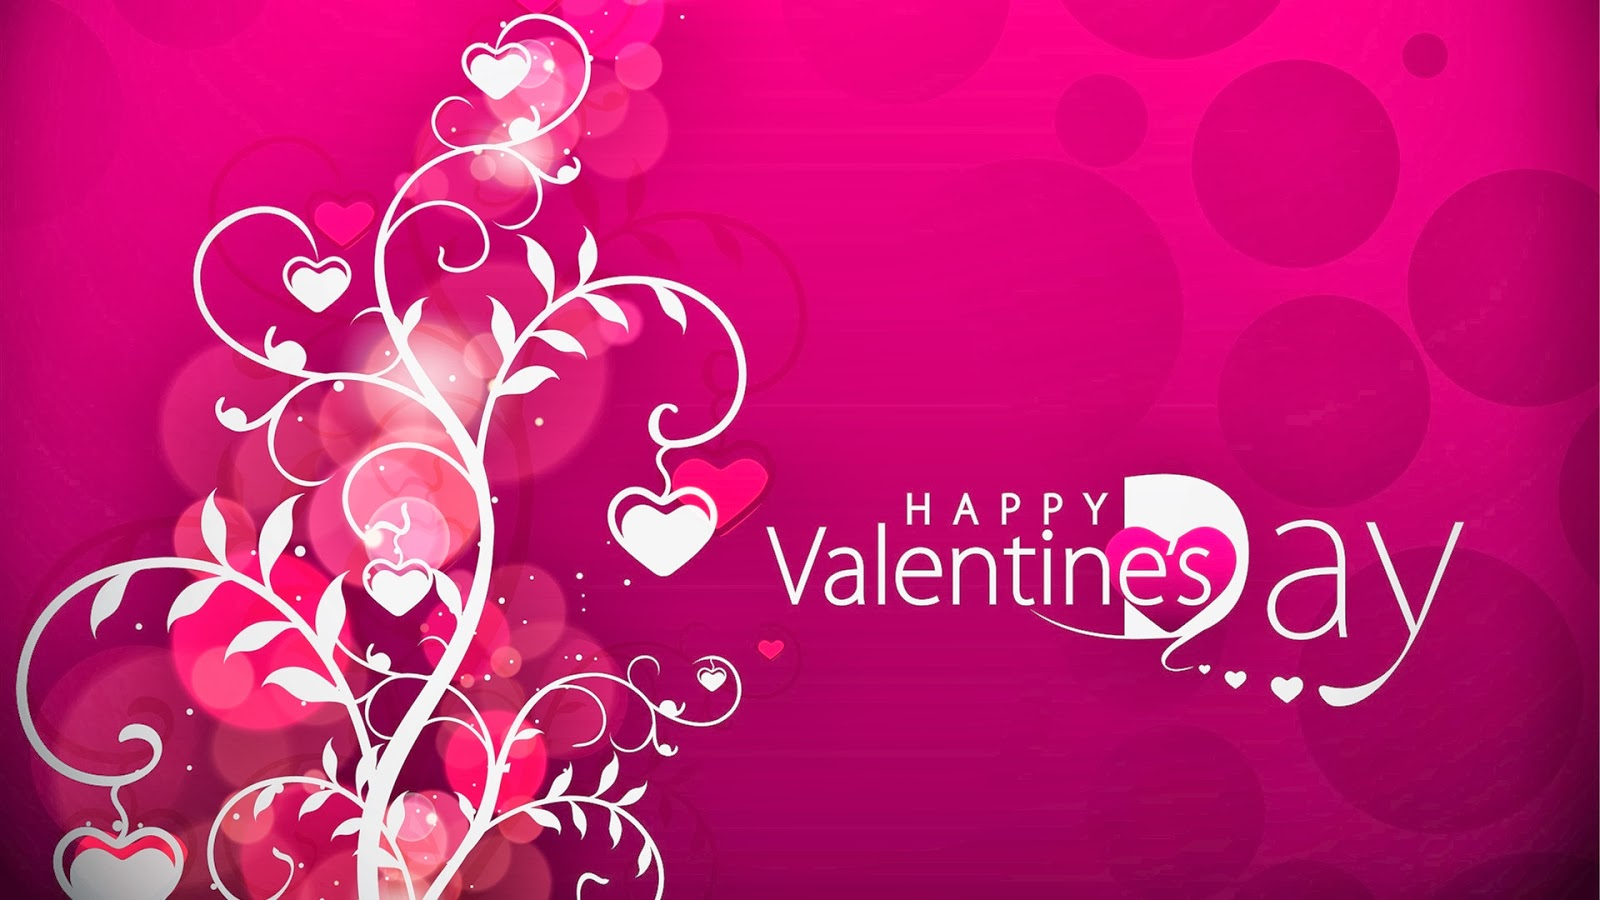 Happy-Valentines-Day-2014-Wallpaper-HD-Happy-Valentines-Day.jpg